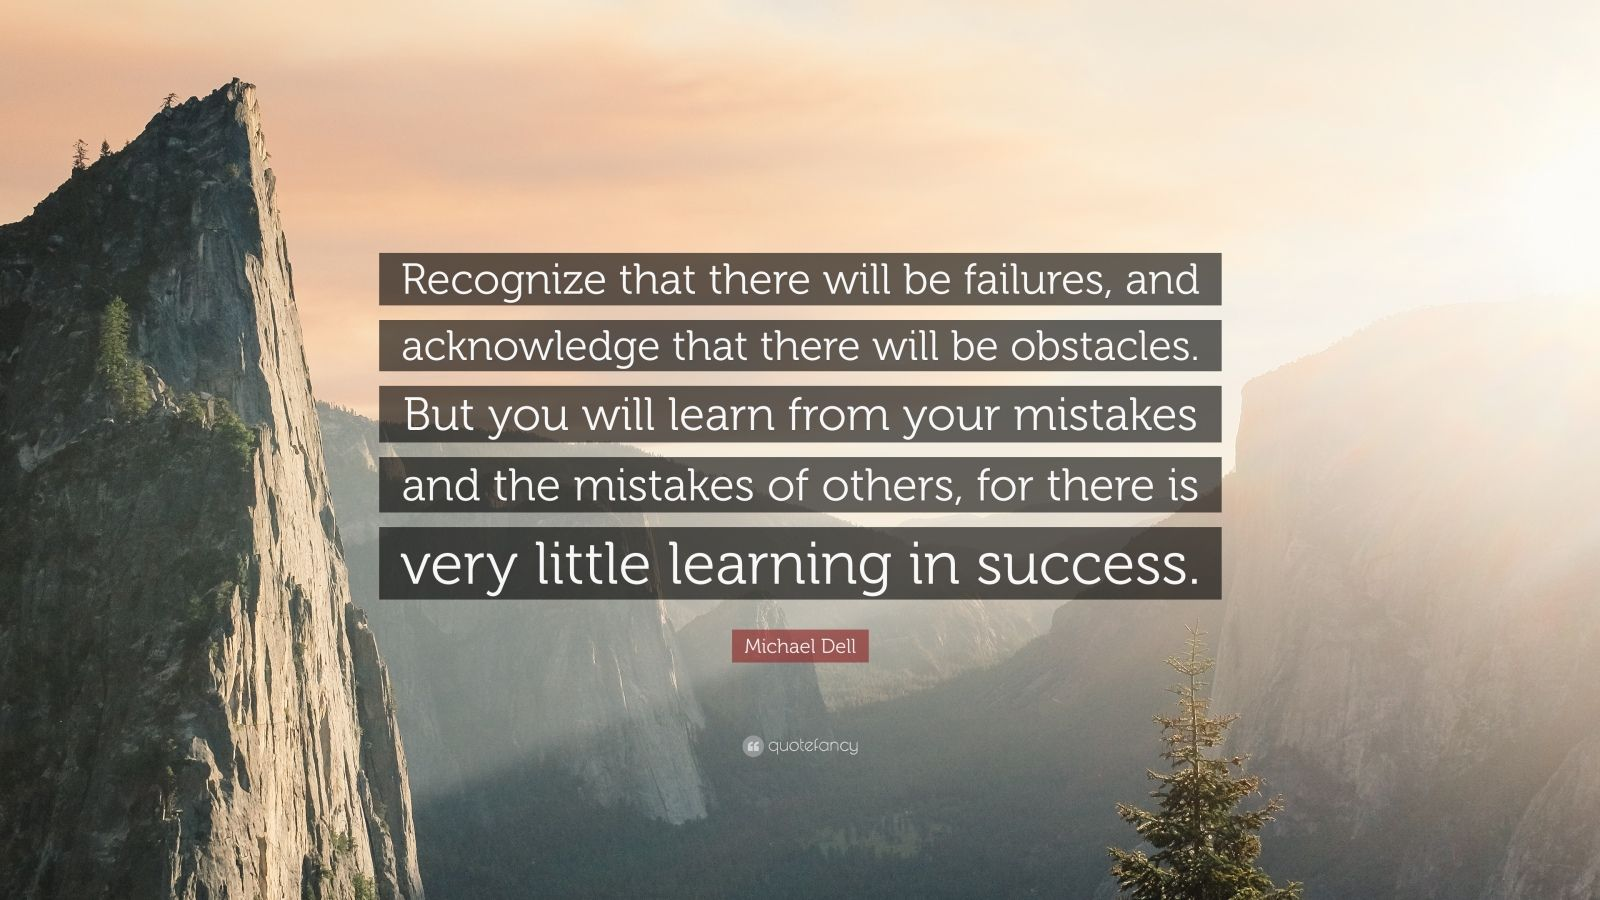 """Michael Dell Quote: """"Recognize that there will be failures, and acknowledge that there will be obstacles. But you will learn from your mistakes and the mistakes of others, for there is very little learning in success."""""""